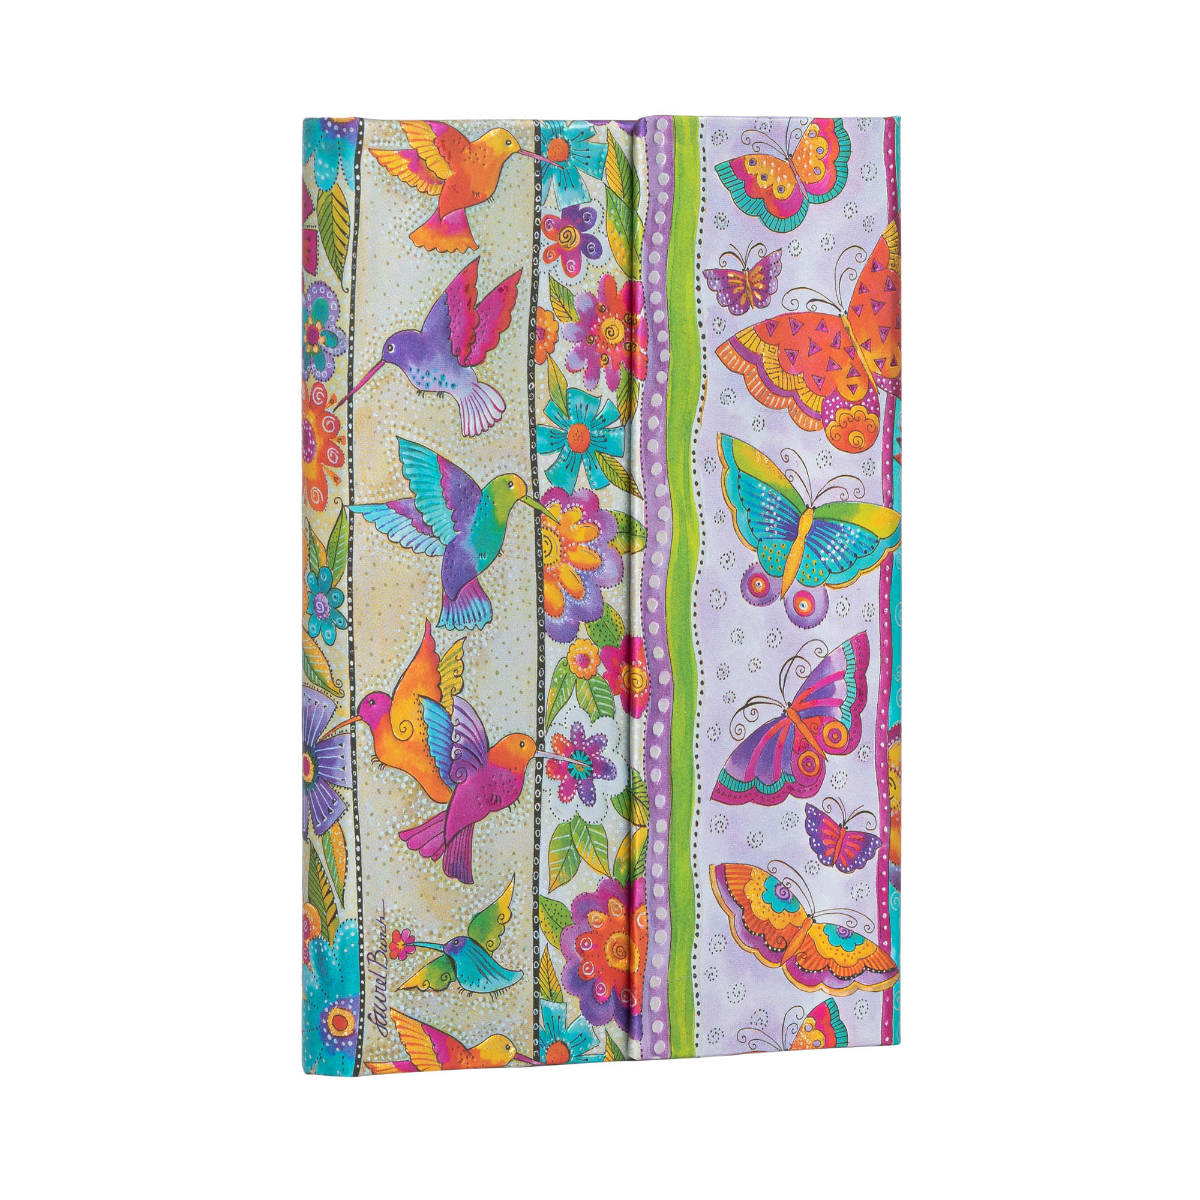 Paperblanks Laurel Burch Hummingbirds & Flutterbyes Mini